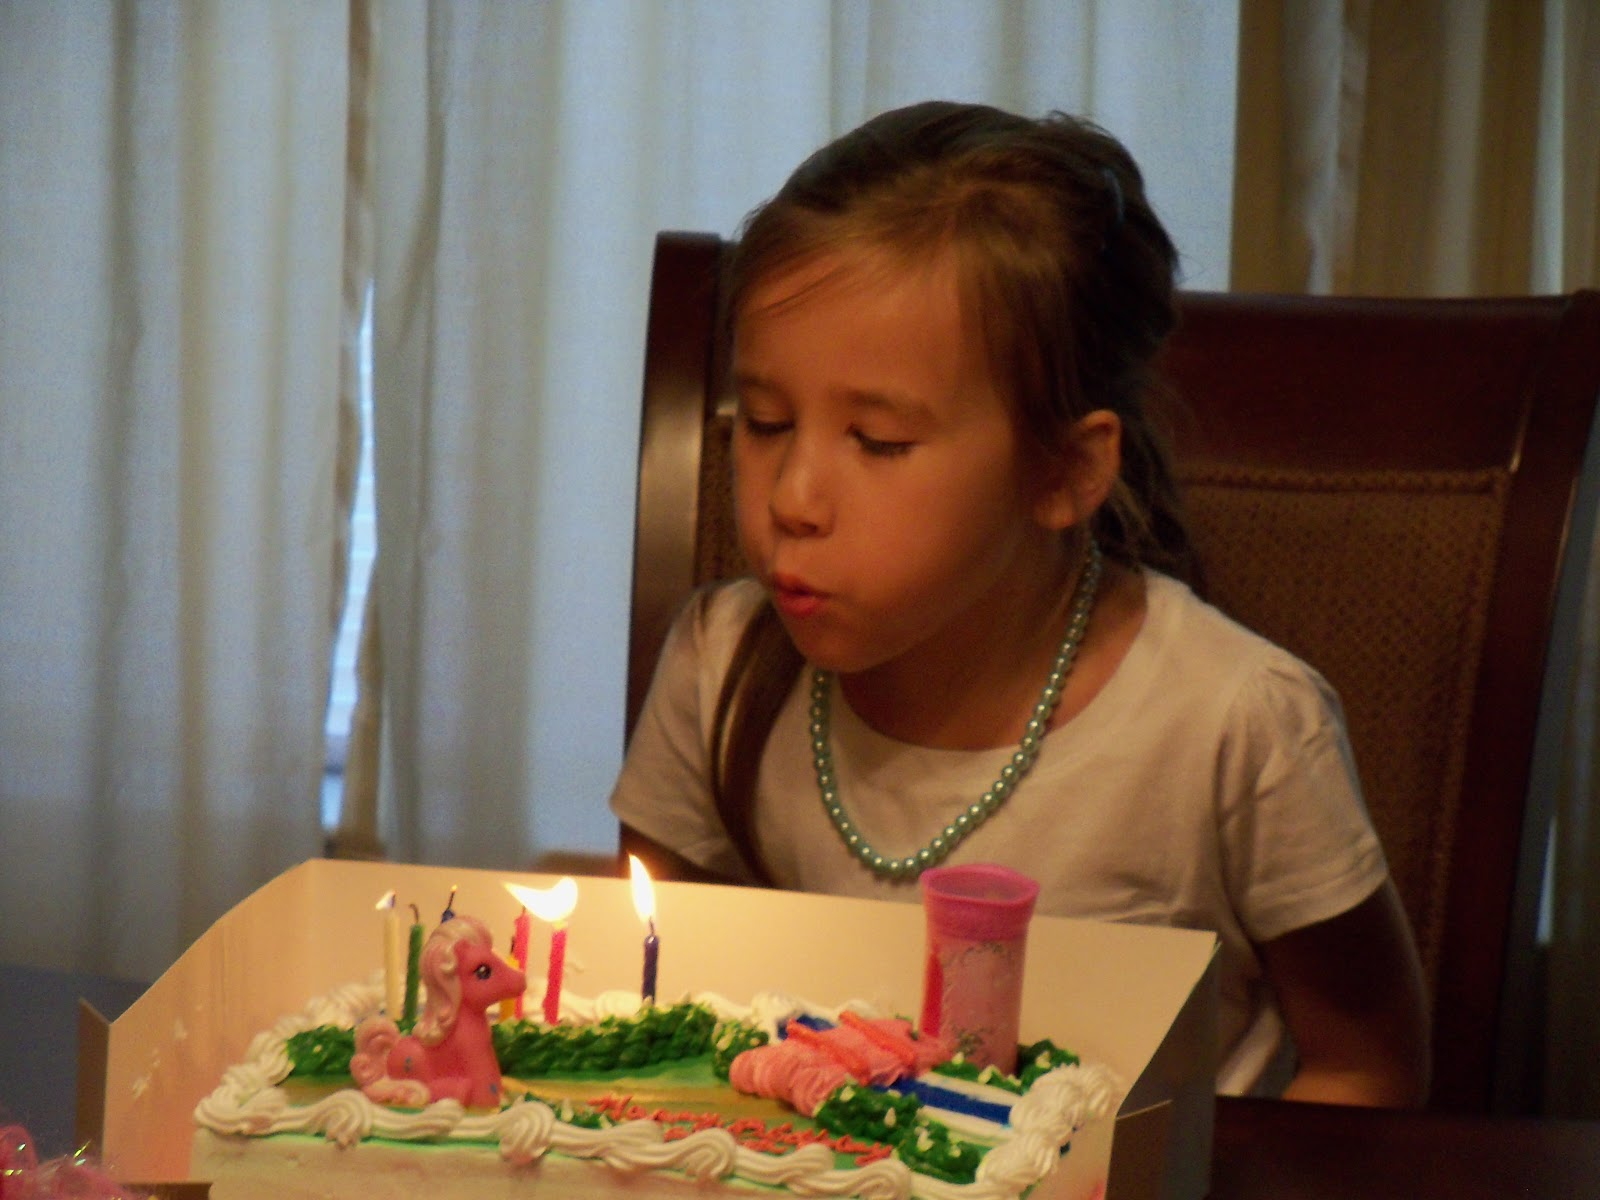 Corinas Birthday Party 2011 - 100_6934.JPG